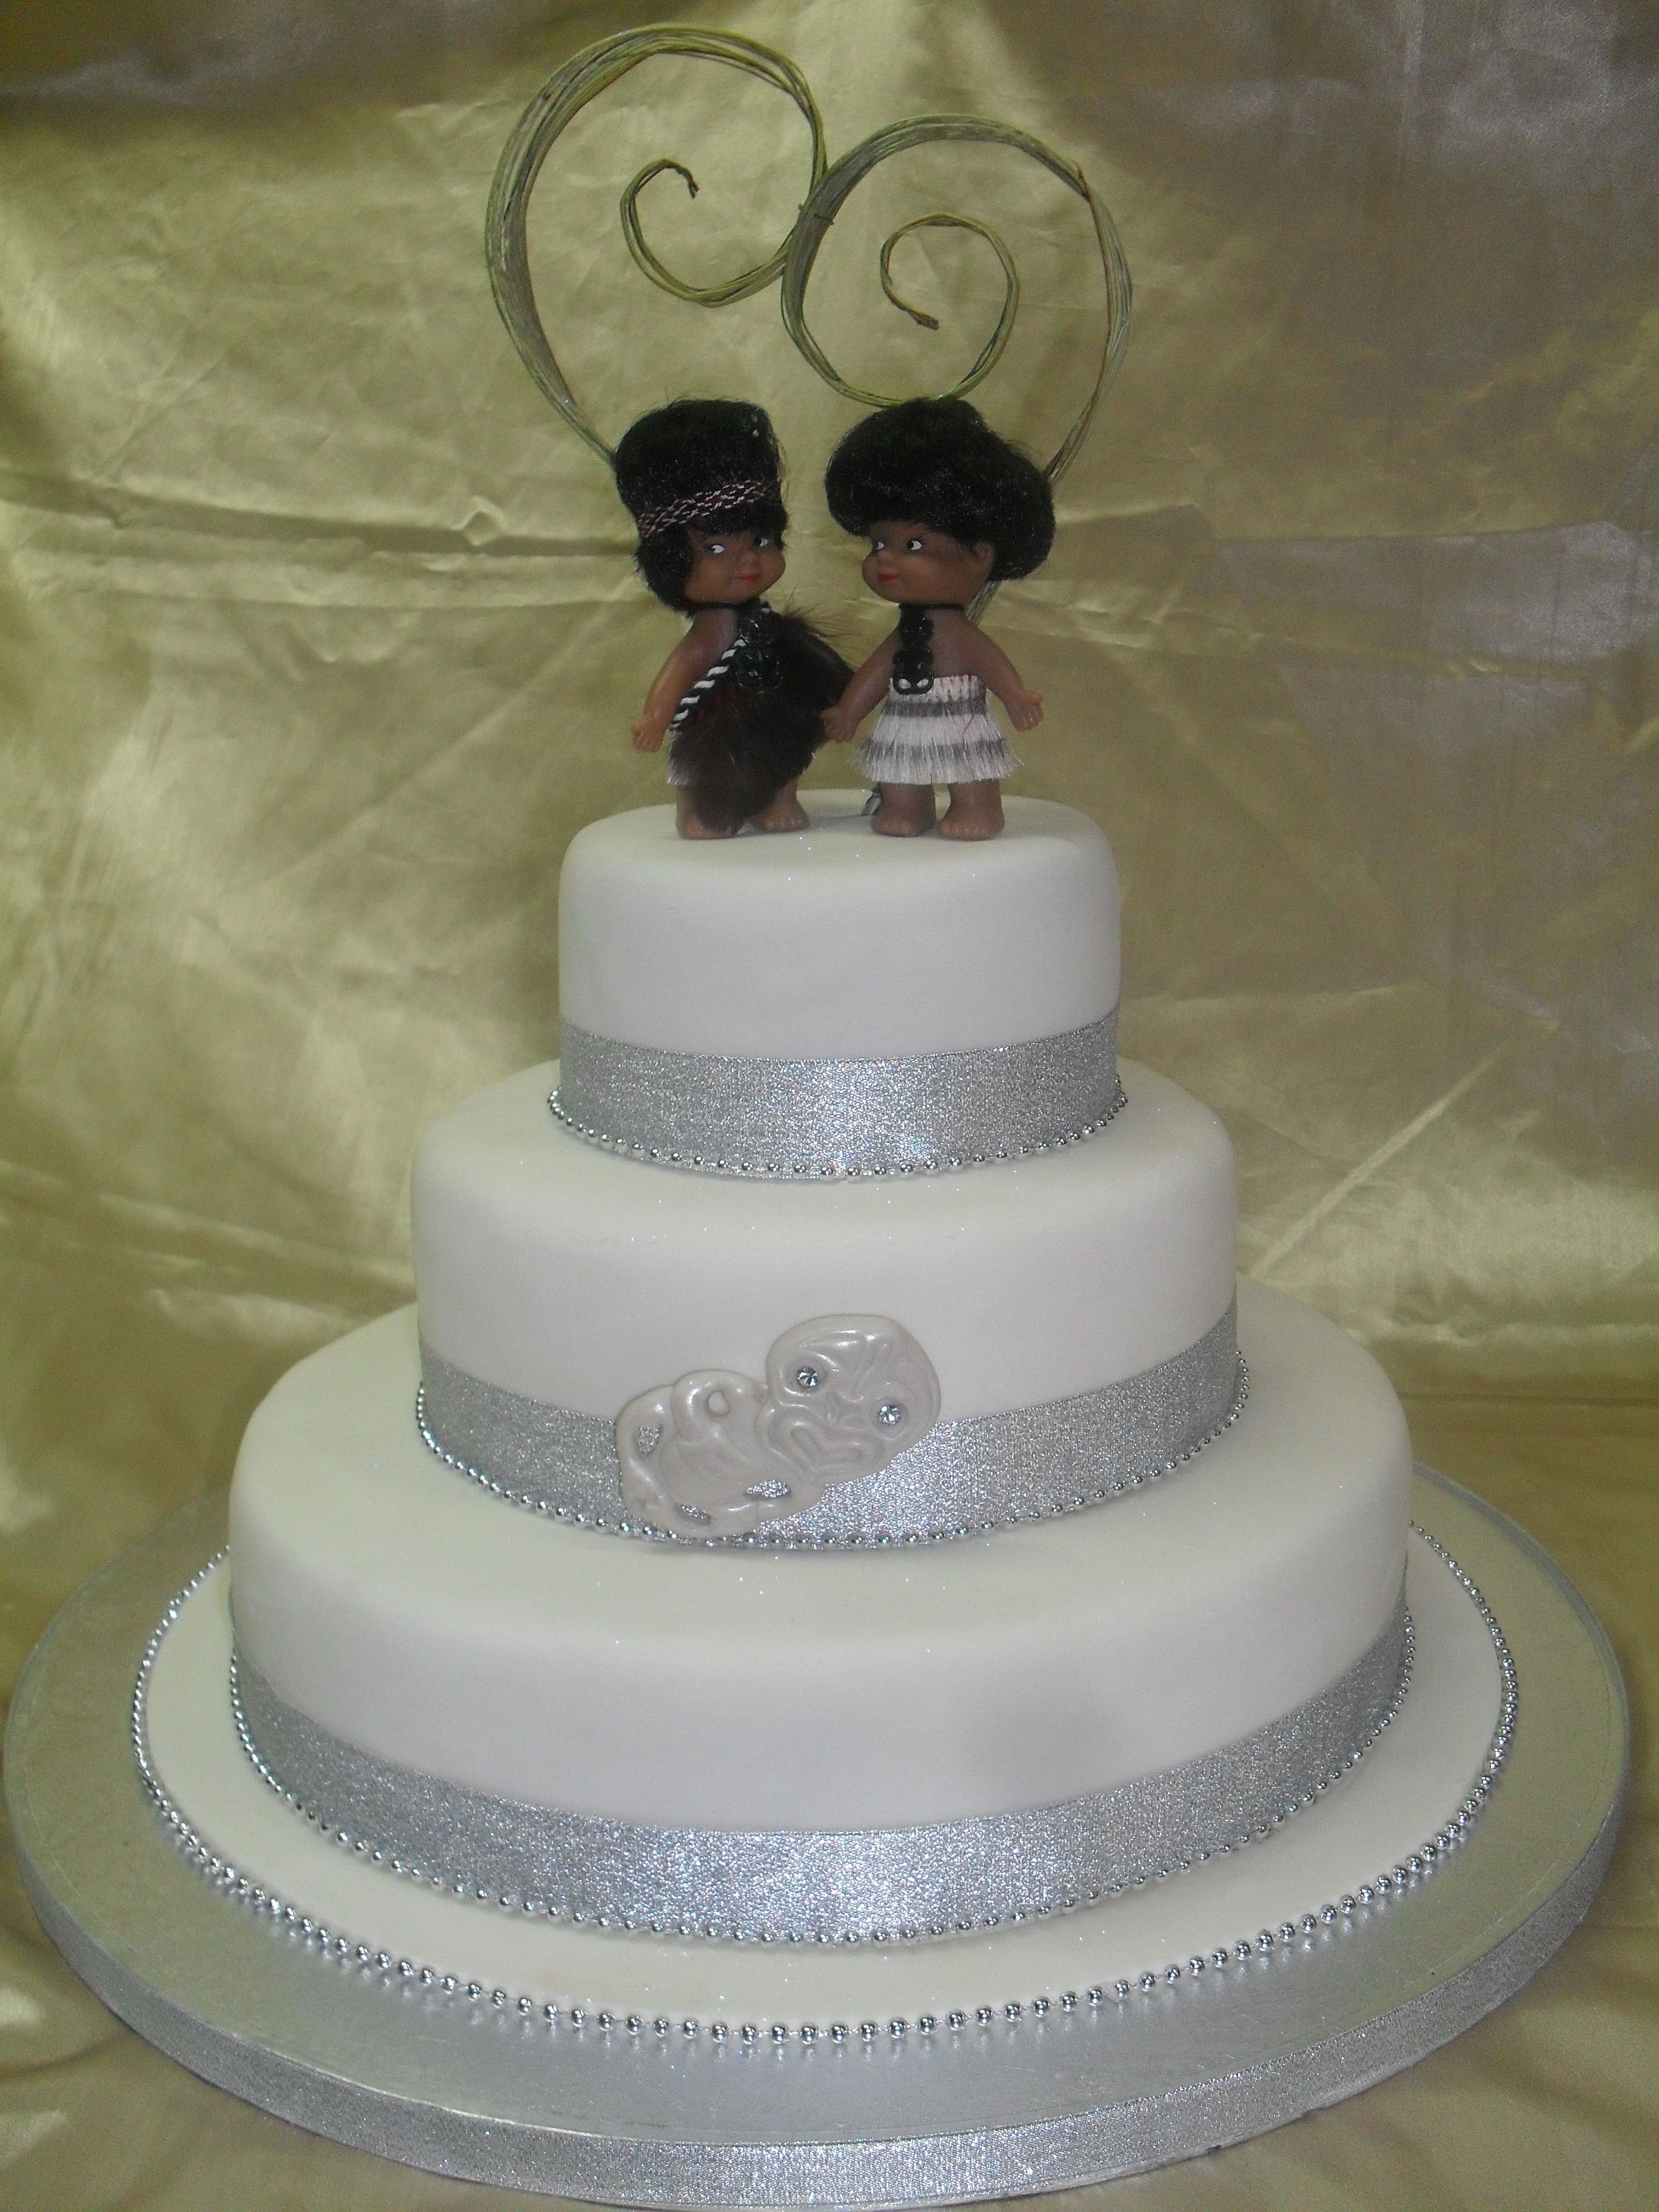 wedding cake toppers new zealand maori themed wedding cake celebrate your culture at your 26552